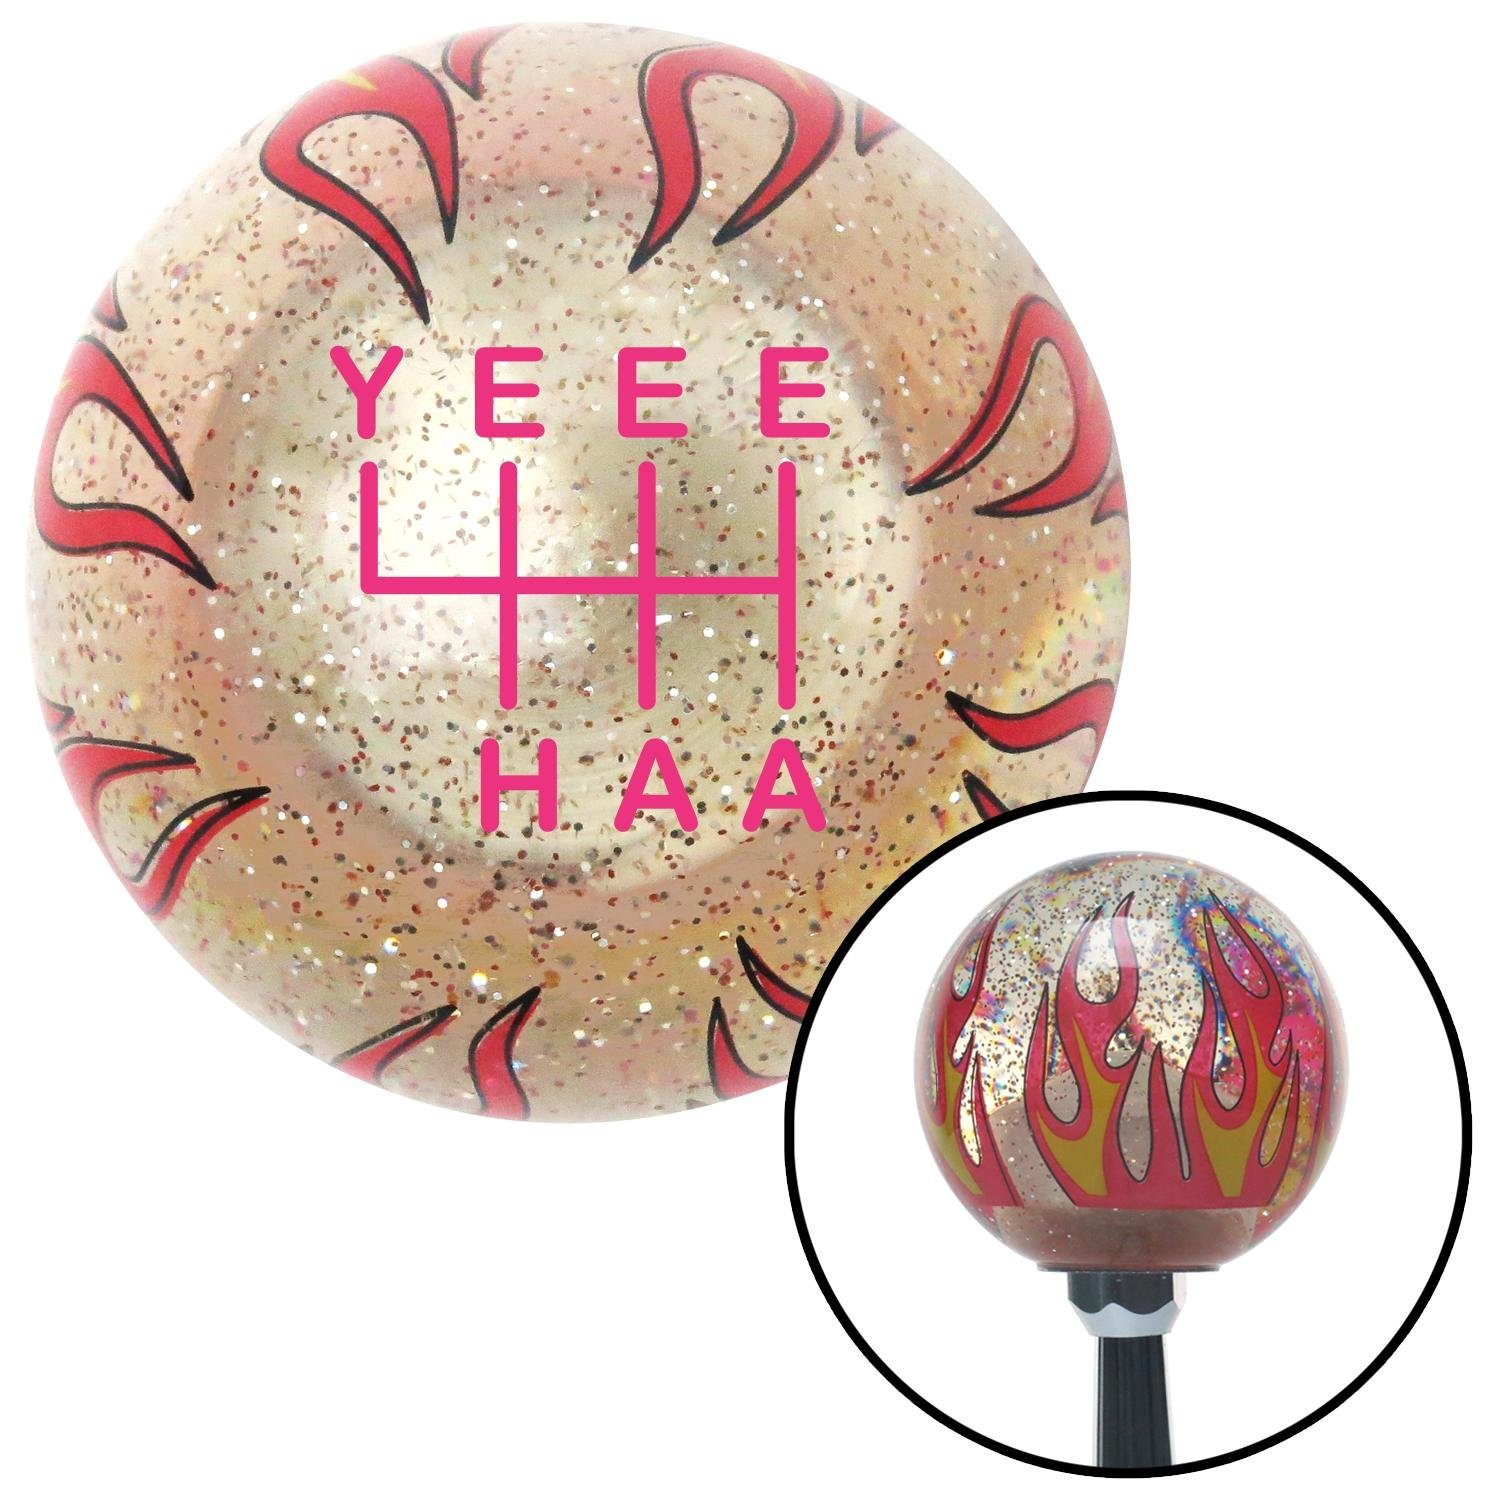 American Shifter 302248 Shift Knob Pink YeeeHaa 6 Speed Clear Flame Metal Flake with M16 x 1.5 Insert